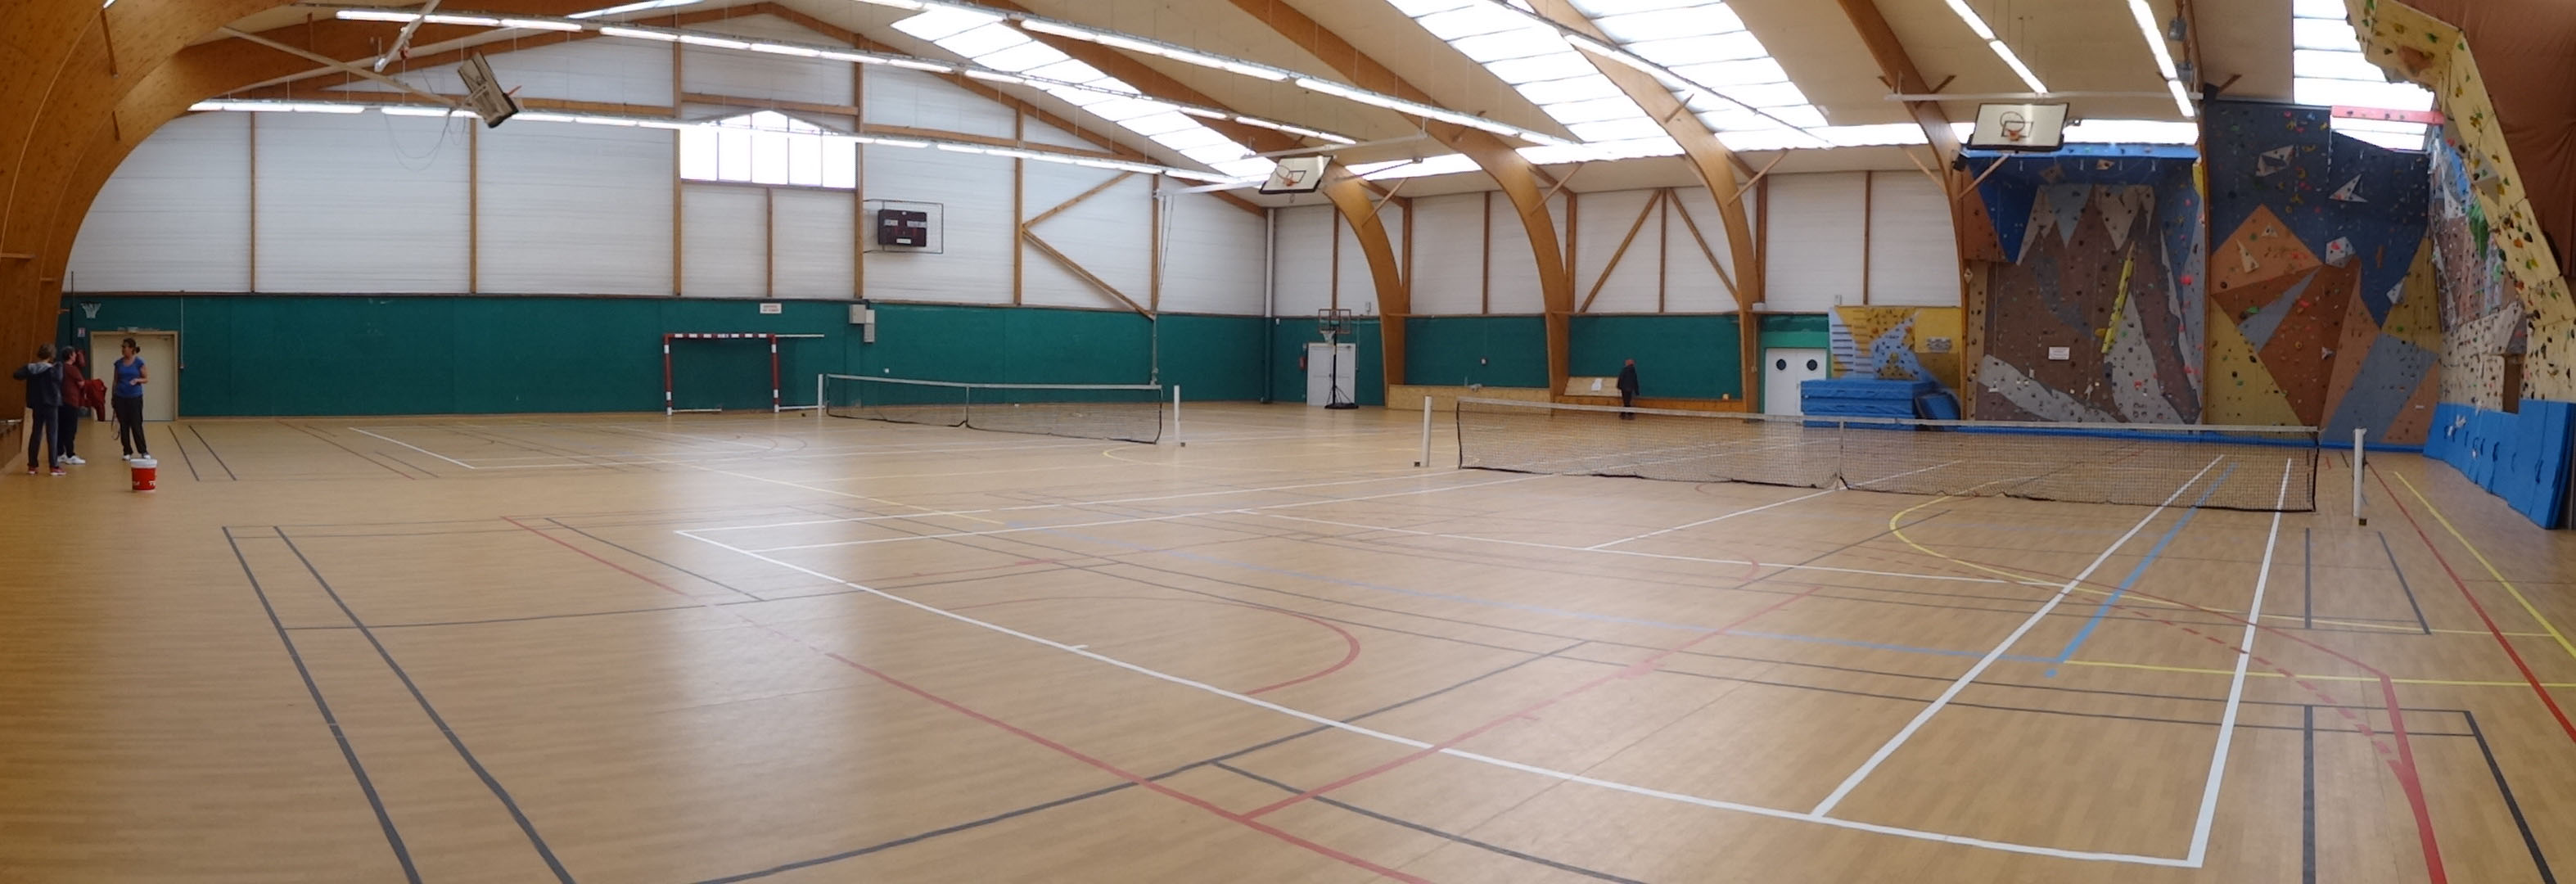 cours tennis